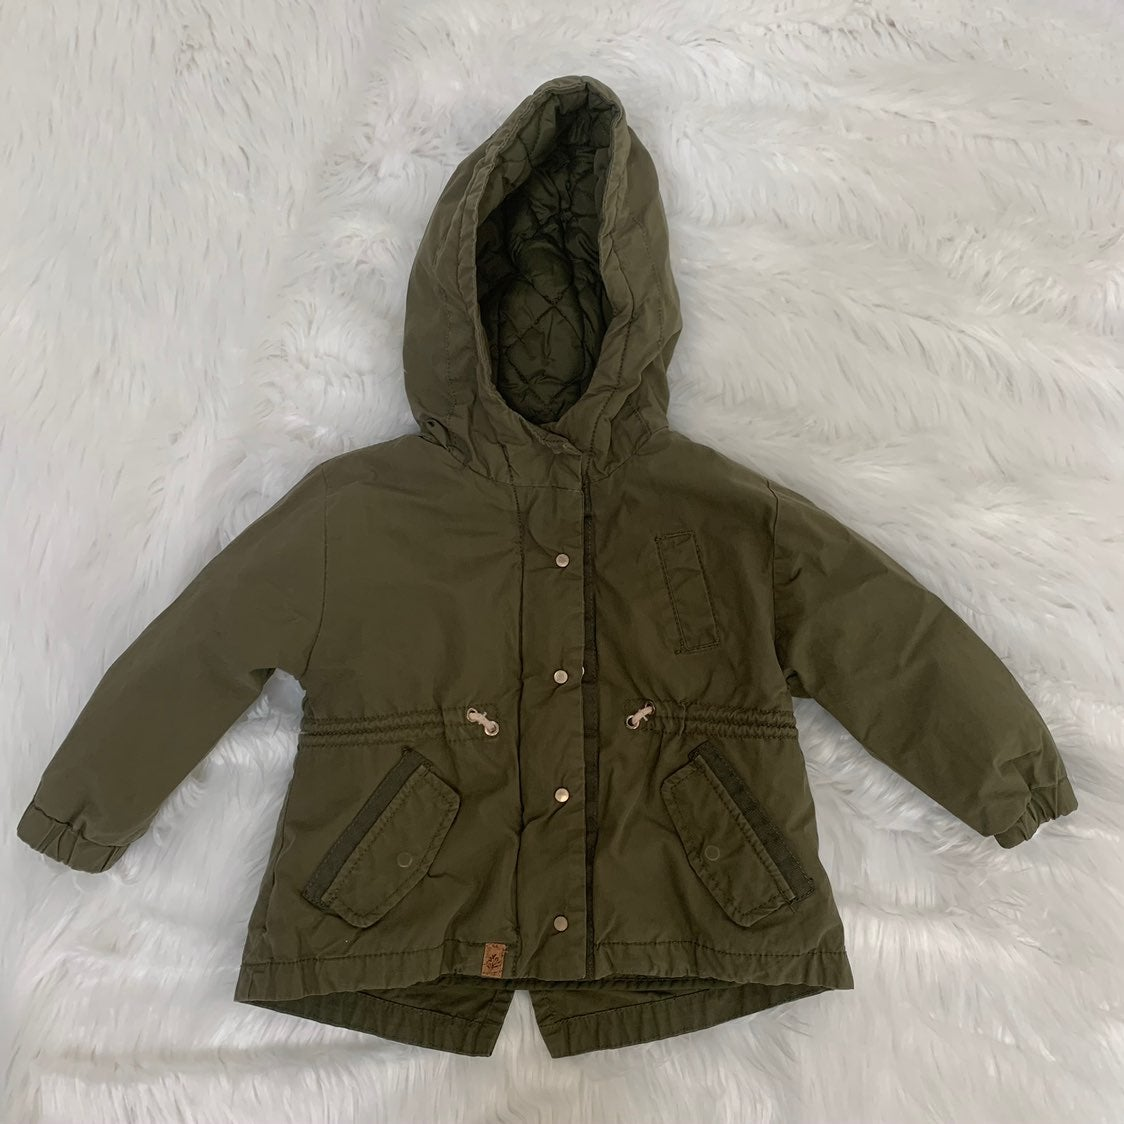 ZARA baby Girl green jacket